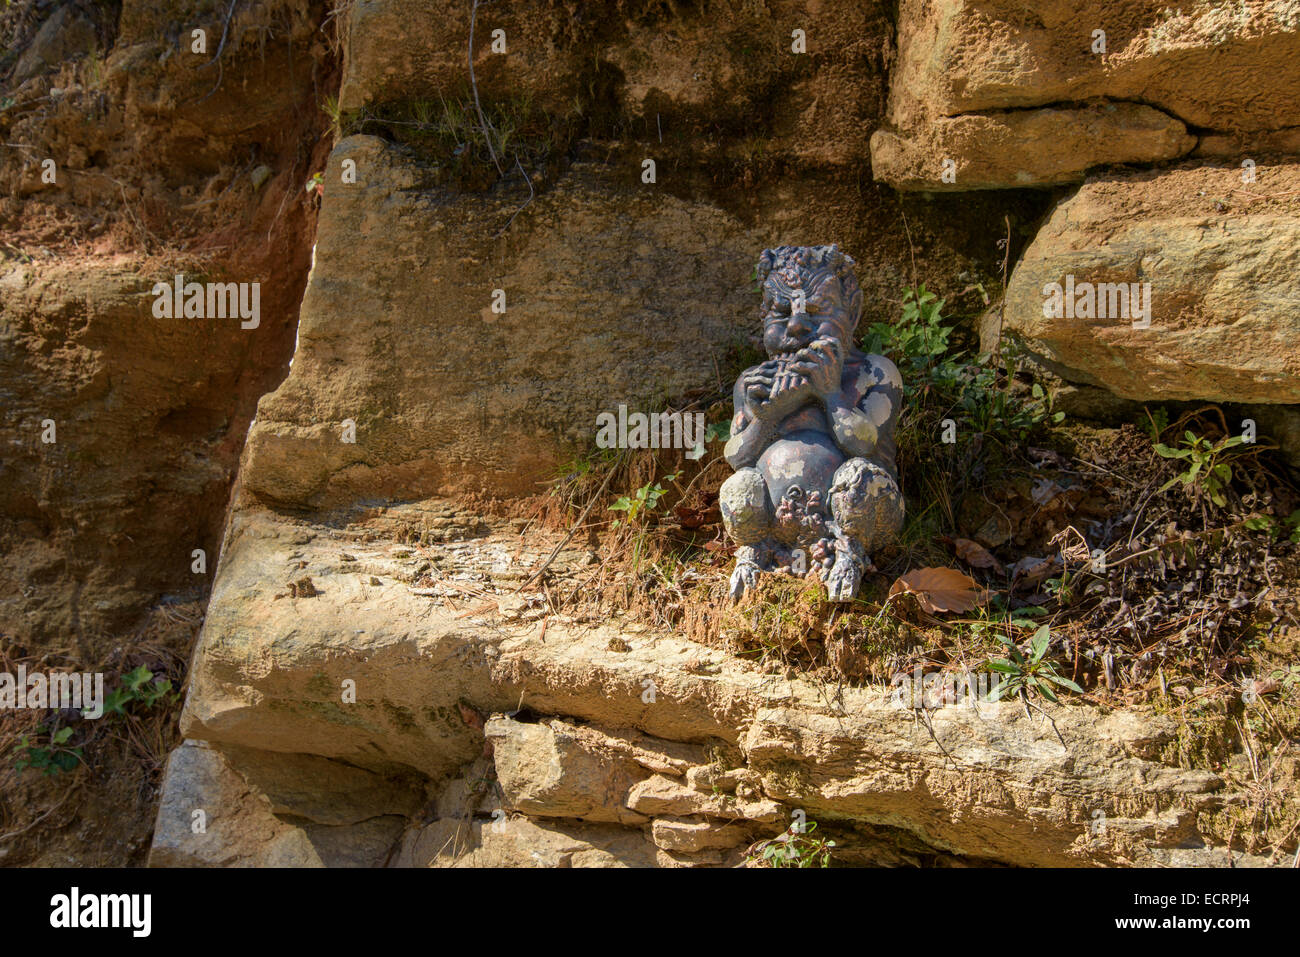 Garden statue of Pan playing flute sitting on rock ledge - Stock Image